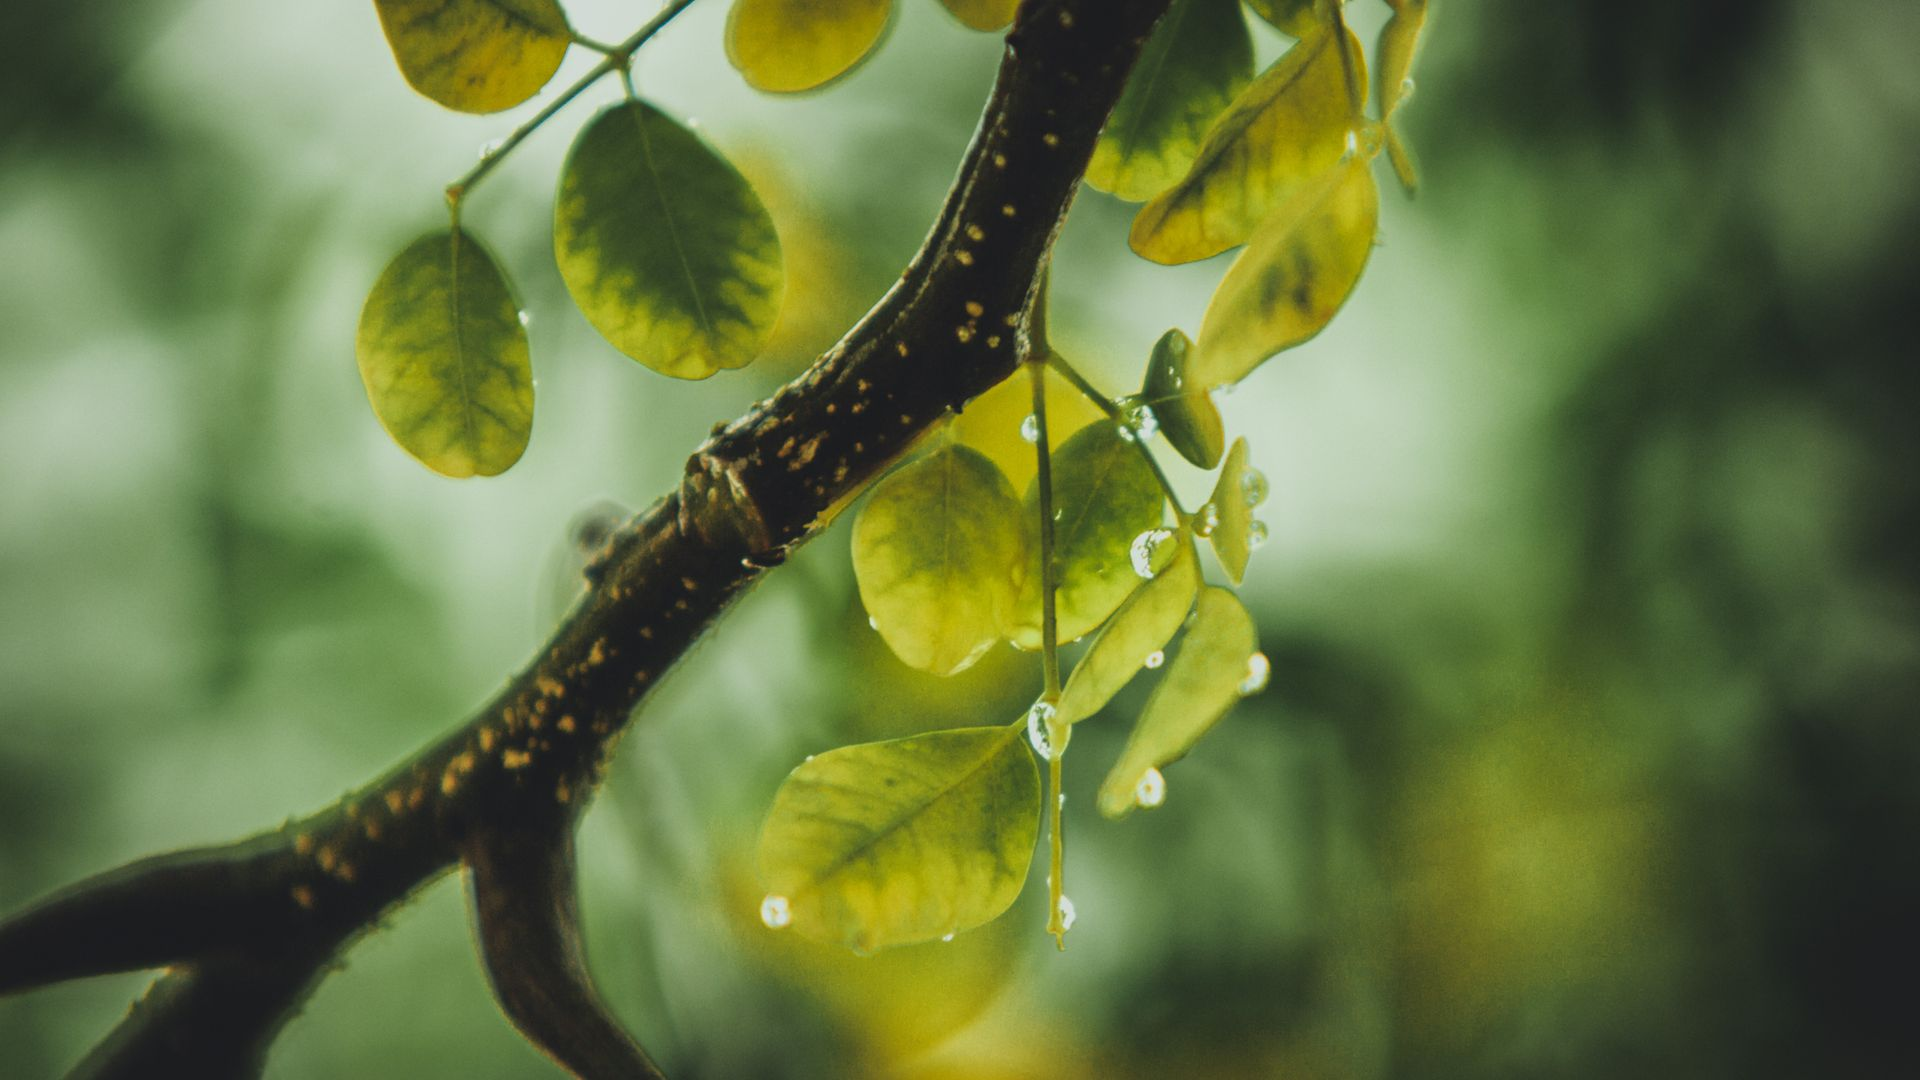 rainfall,leafy vegetable,piddle,raw,with,universe,nature,tree,leafed,rain,water,hidrosis,diaphoresis,green,pee,natural state,natural phenomenon,droplets